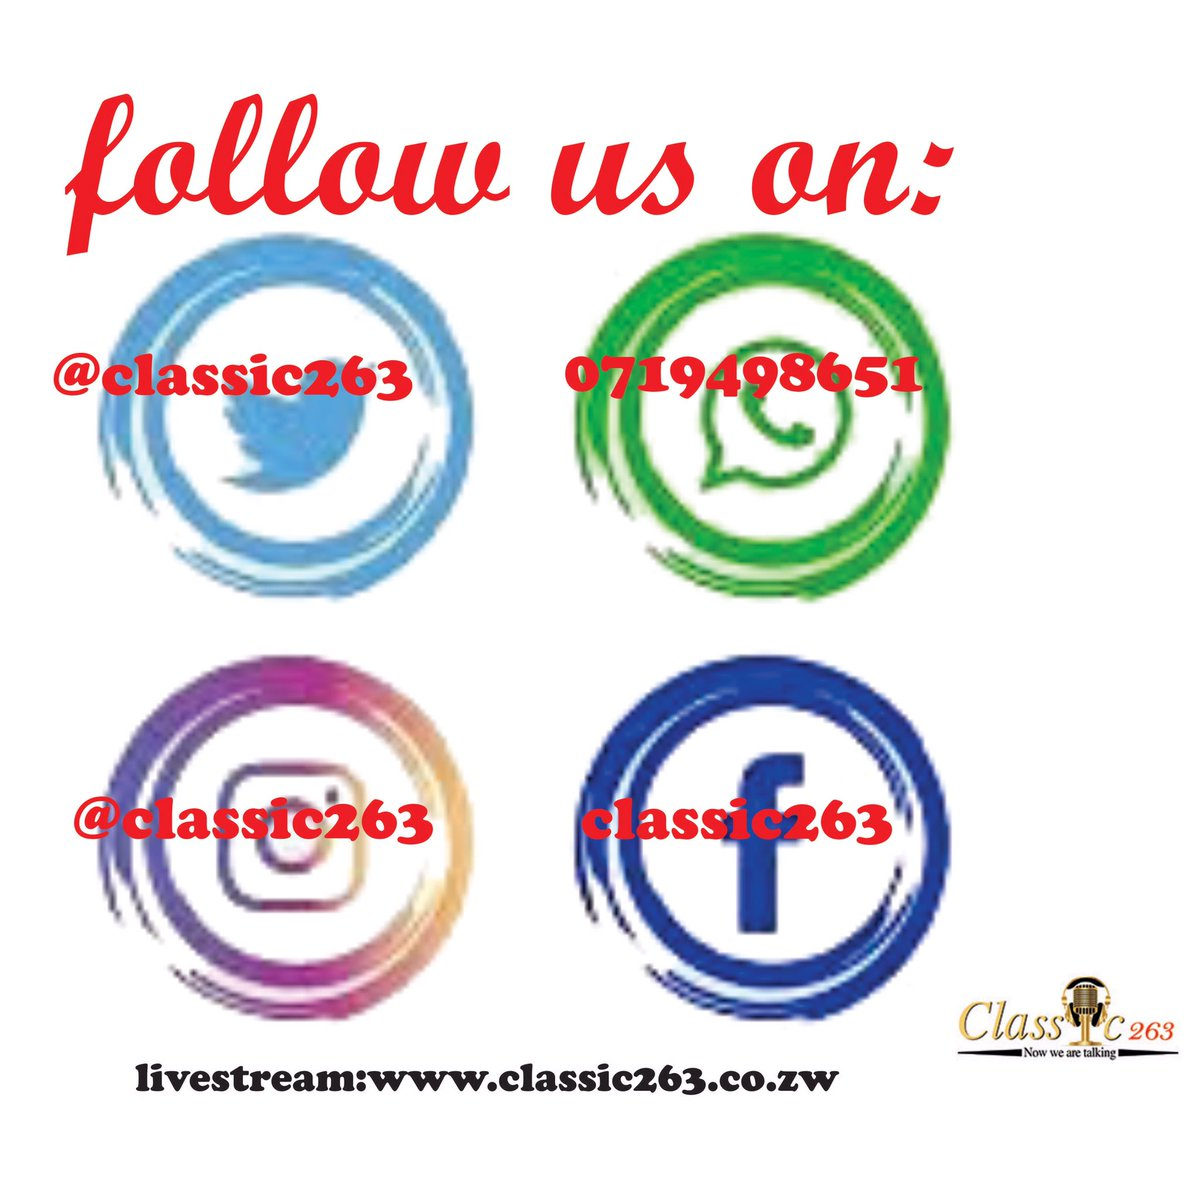 test Twitter Media - Are you on Twitter, Instagram & Facebook❓ So are we ! @classic263 Hangout with us for current affairs, news and regular updates about our shows and your favorite presenters... Livestream on https://t.co/BNGfdqGRka @powerfmzimbabwe @ZBCNewsonline @centralradio958 @InfoMinZW https://t.co/8u2mR8wCeI